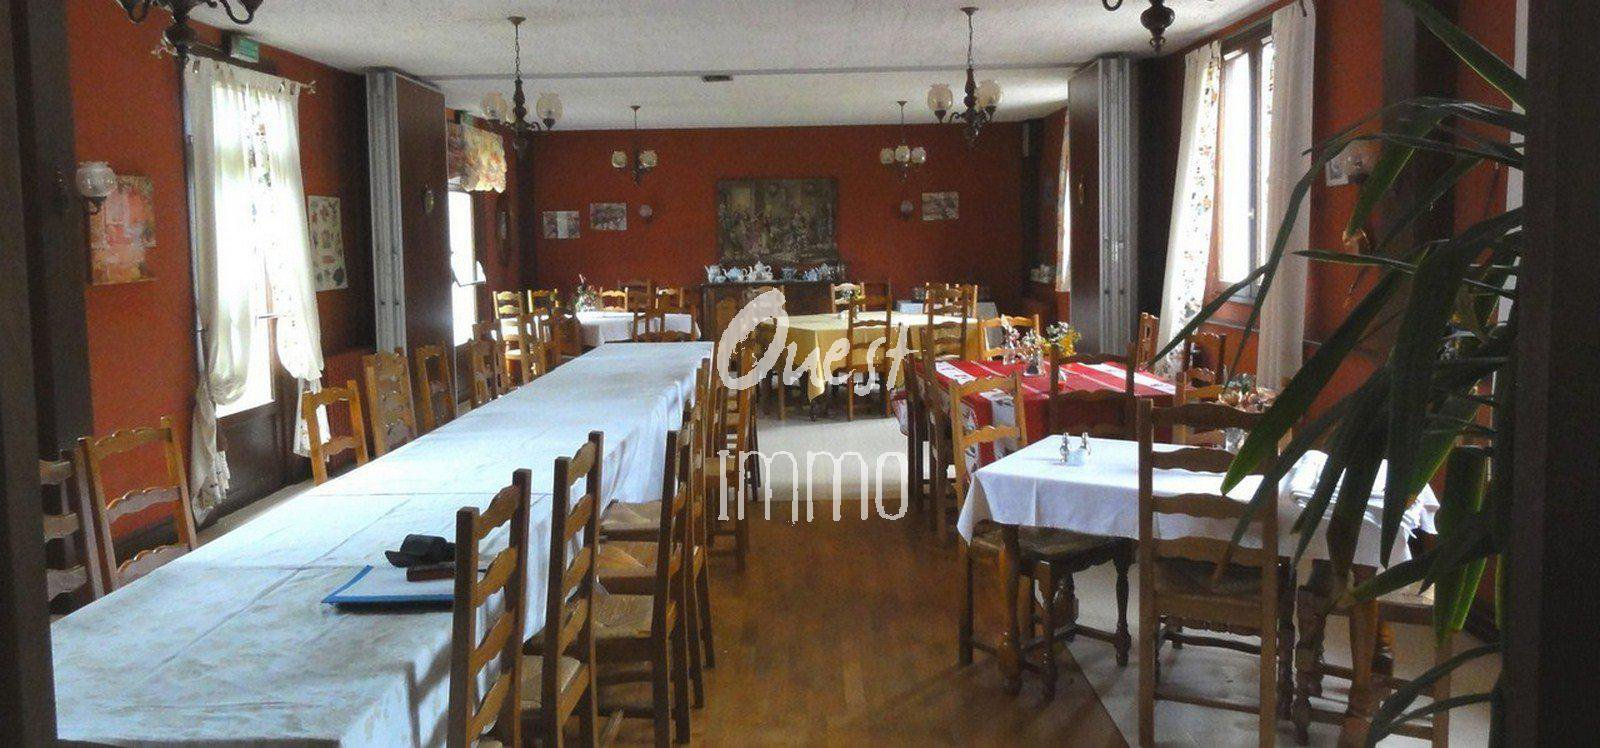 NEAR GREAT OPPORTUNITY CARHAIX, HOSTEL DEVELOP